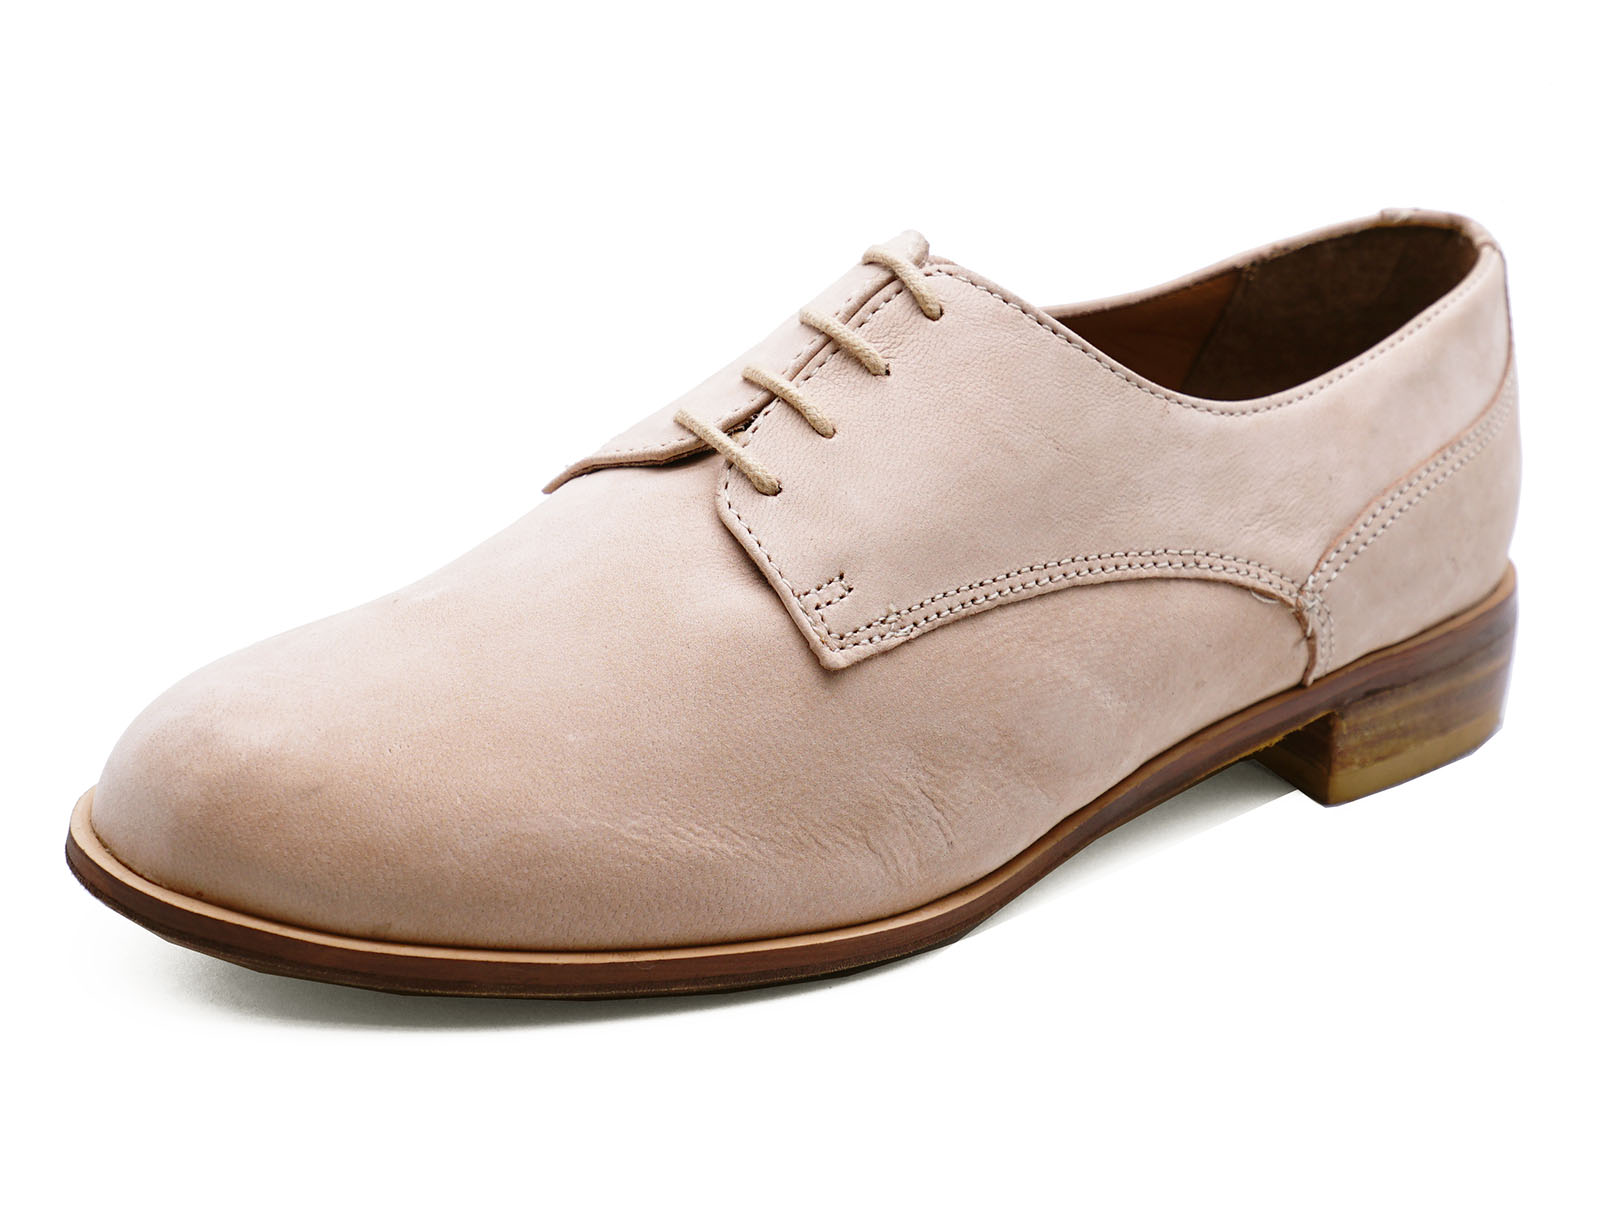 Ladies Real Leather Nude Flat Lace Up Brogue Loafers Smart Casual